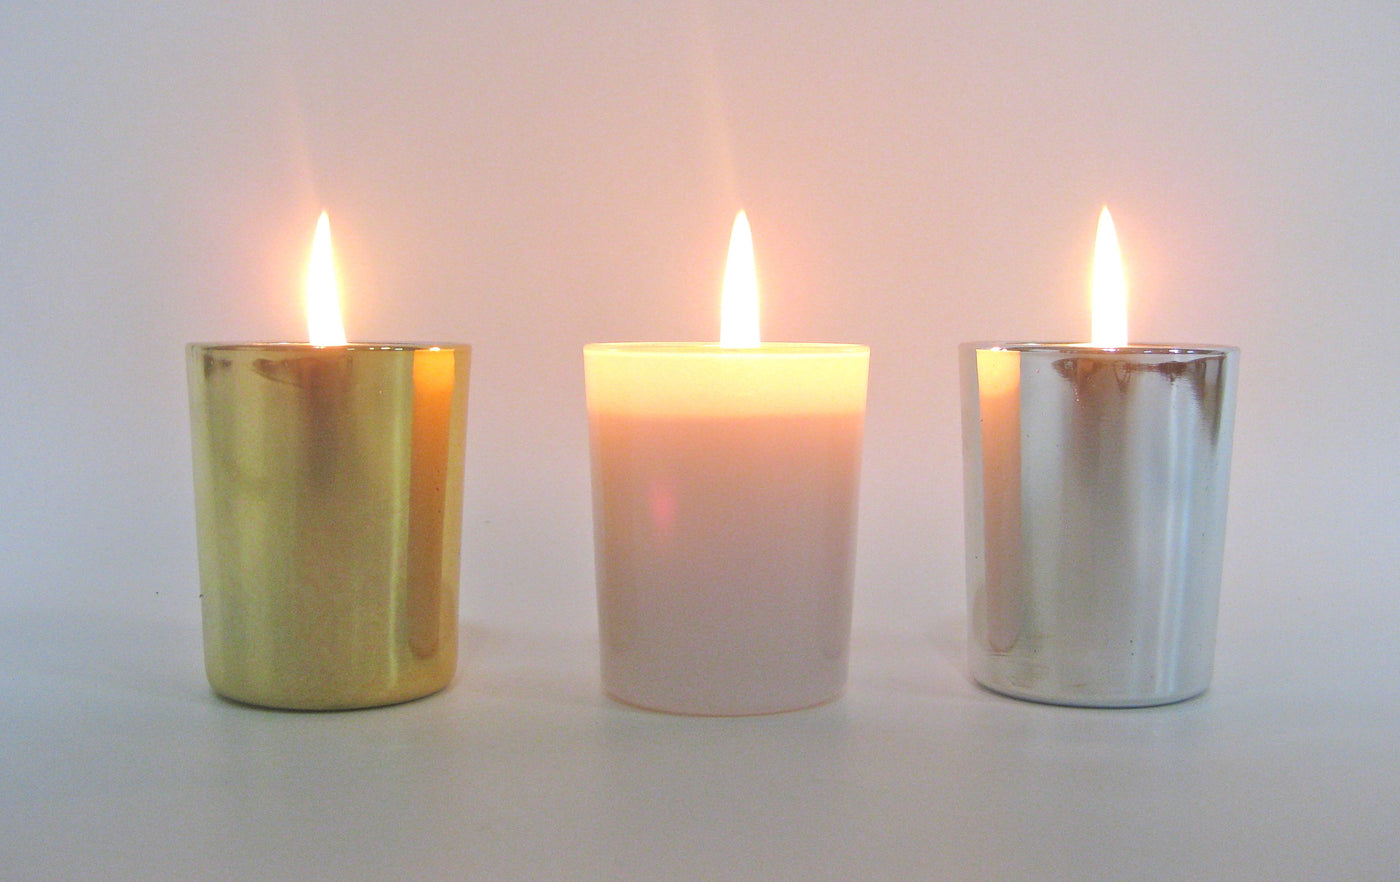 Oh dear, I forgot... new gold, silver & white votive glasses!